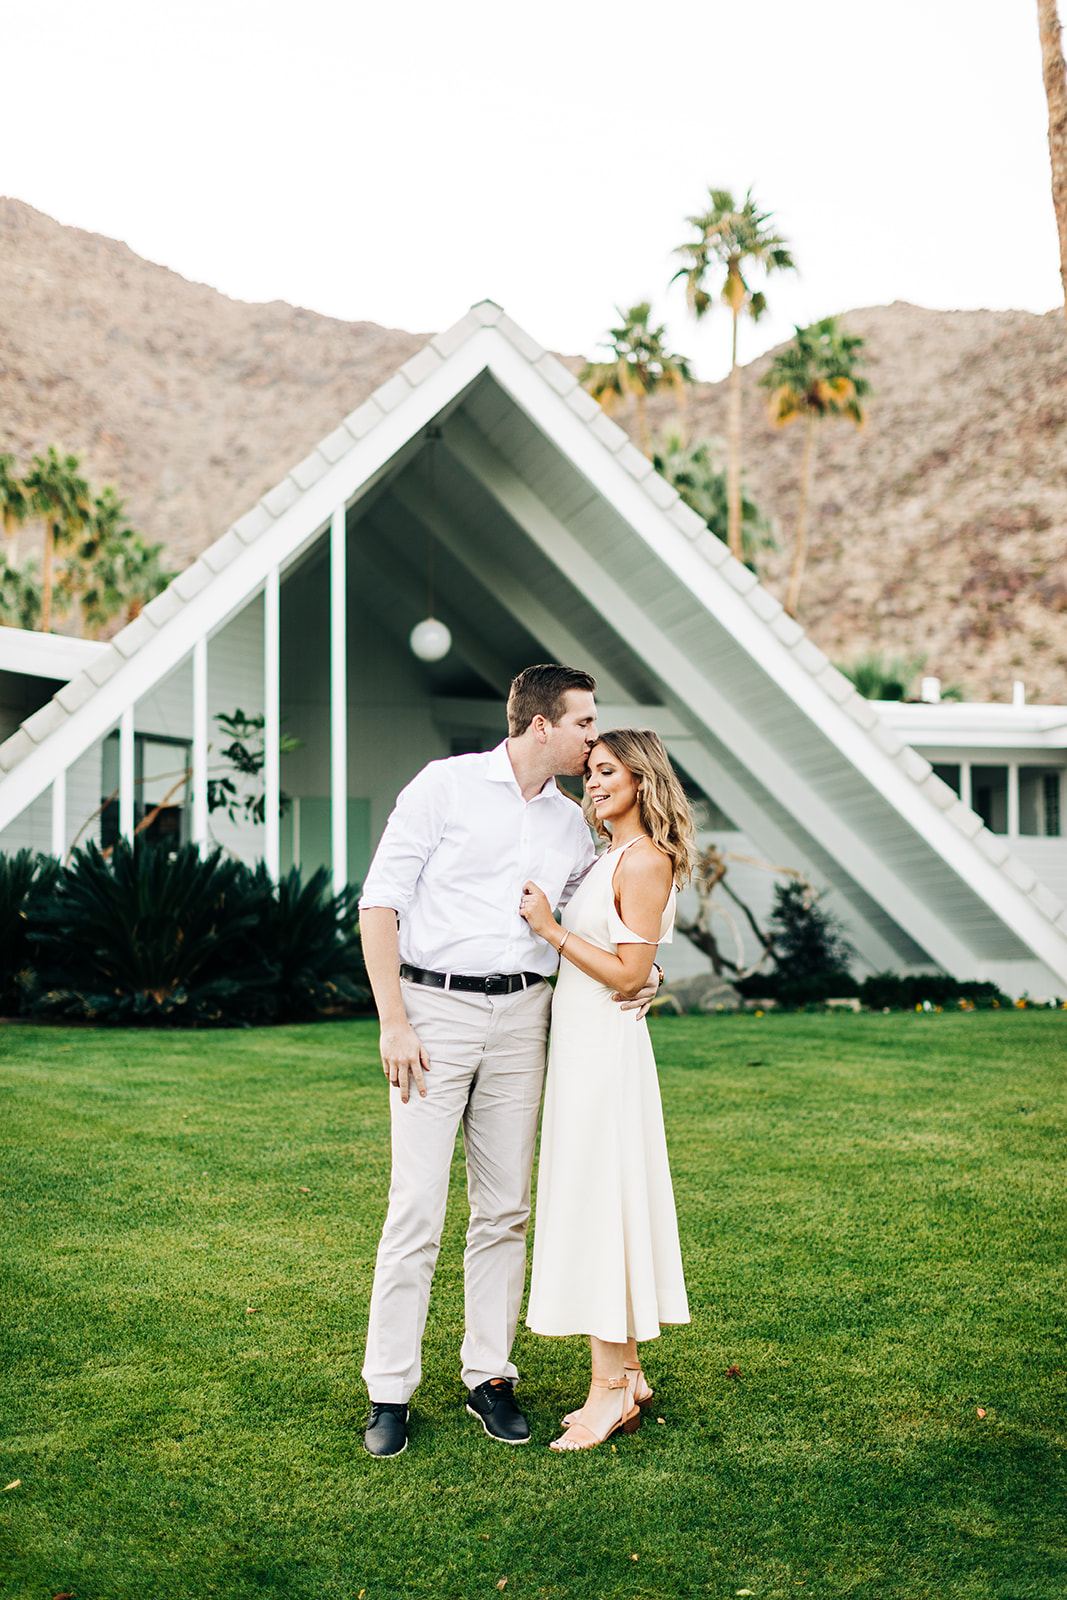 Paulina-Drew_Palm-Springs-Engagement-Photos_Clarisse-Rae_Southern-California-Wedding-Photographer-1